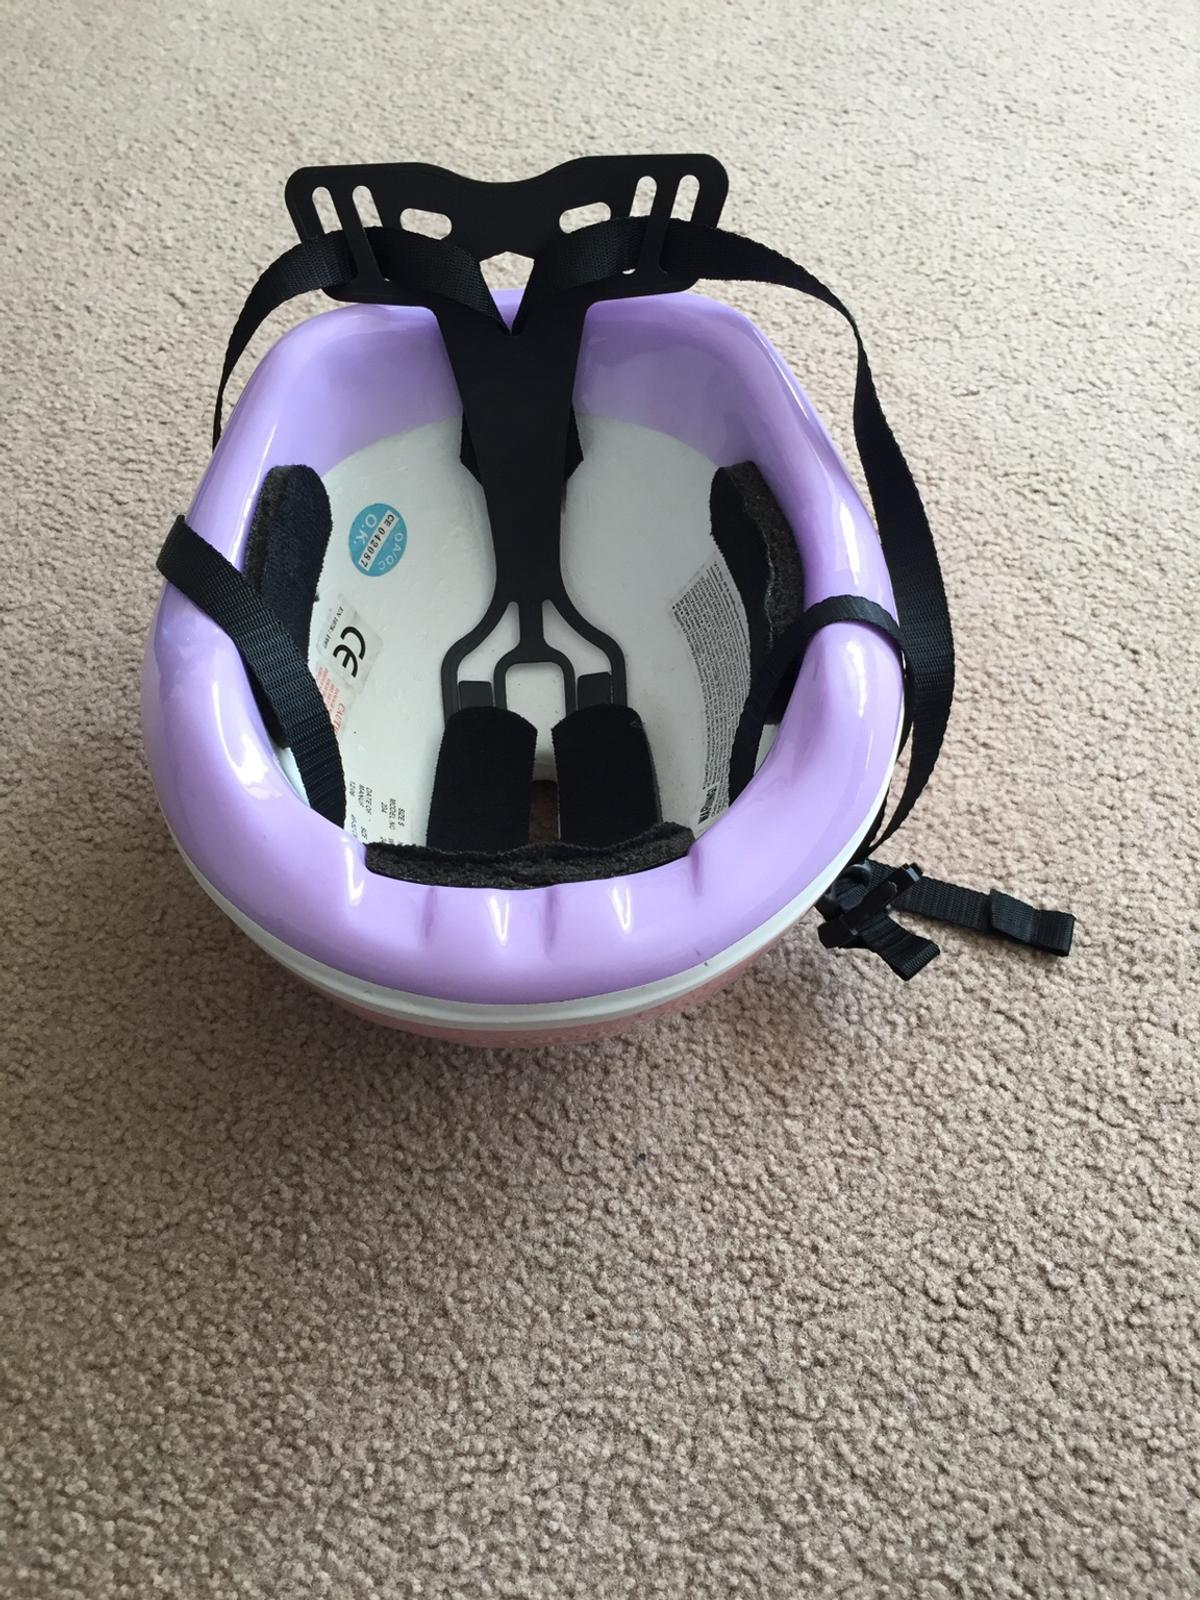 Excellant condition. Only used a few times. Girls bike helmet.